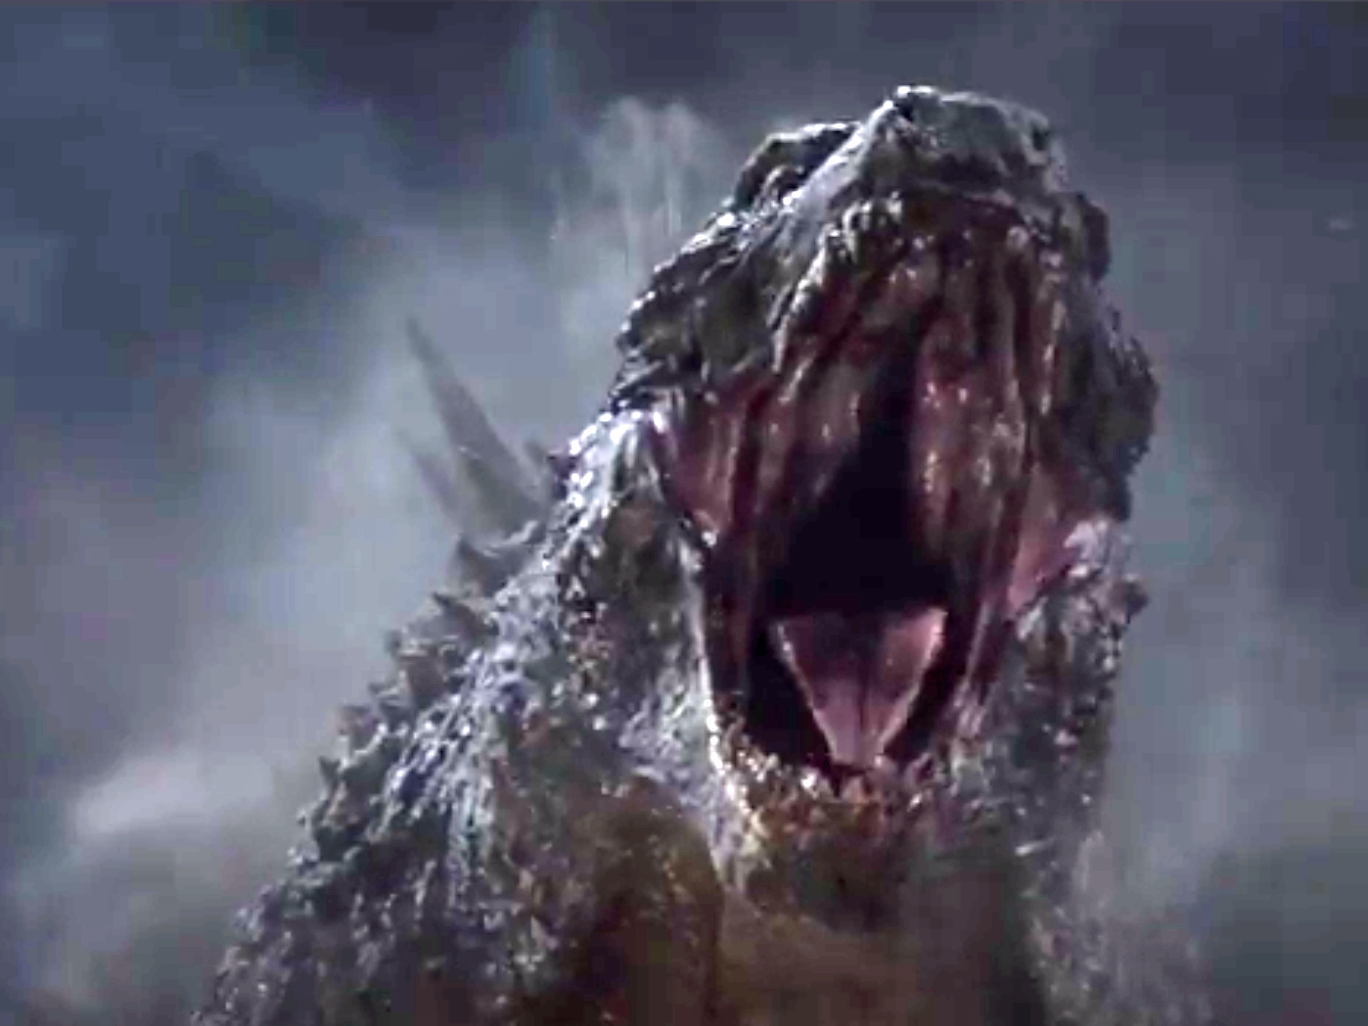 Monster movies godzilla 2014